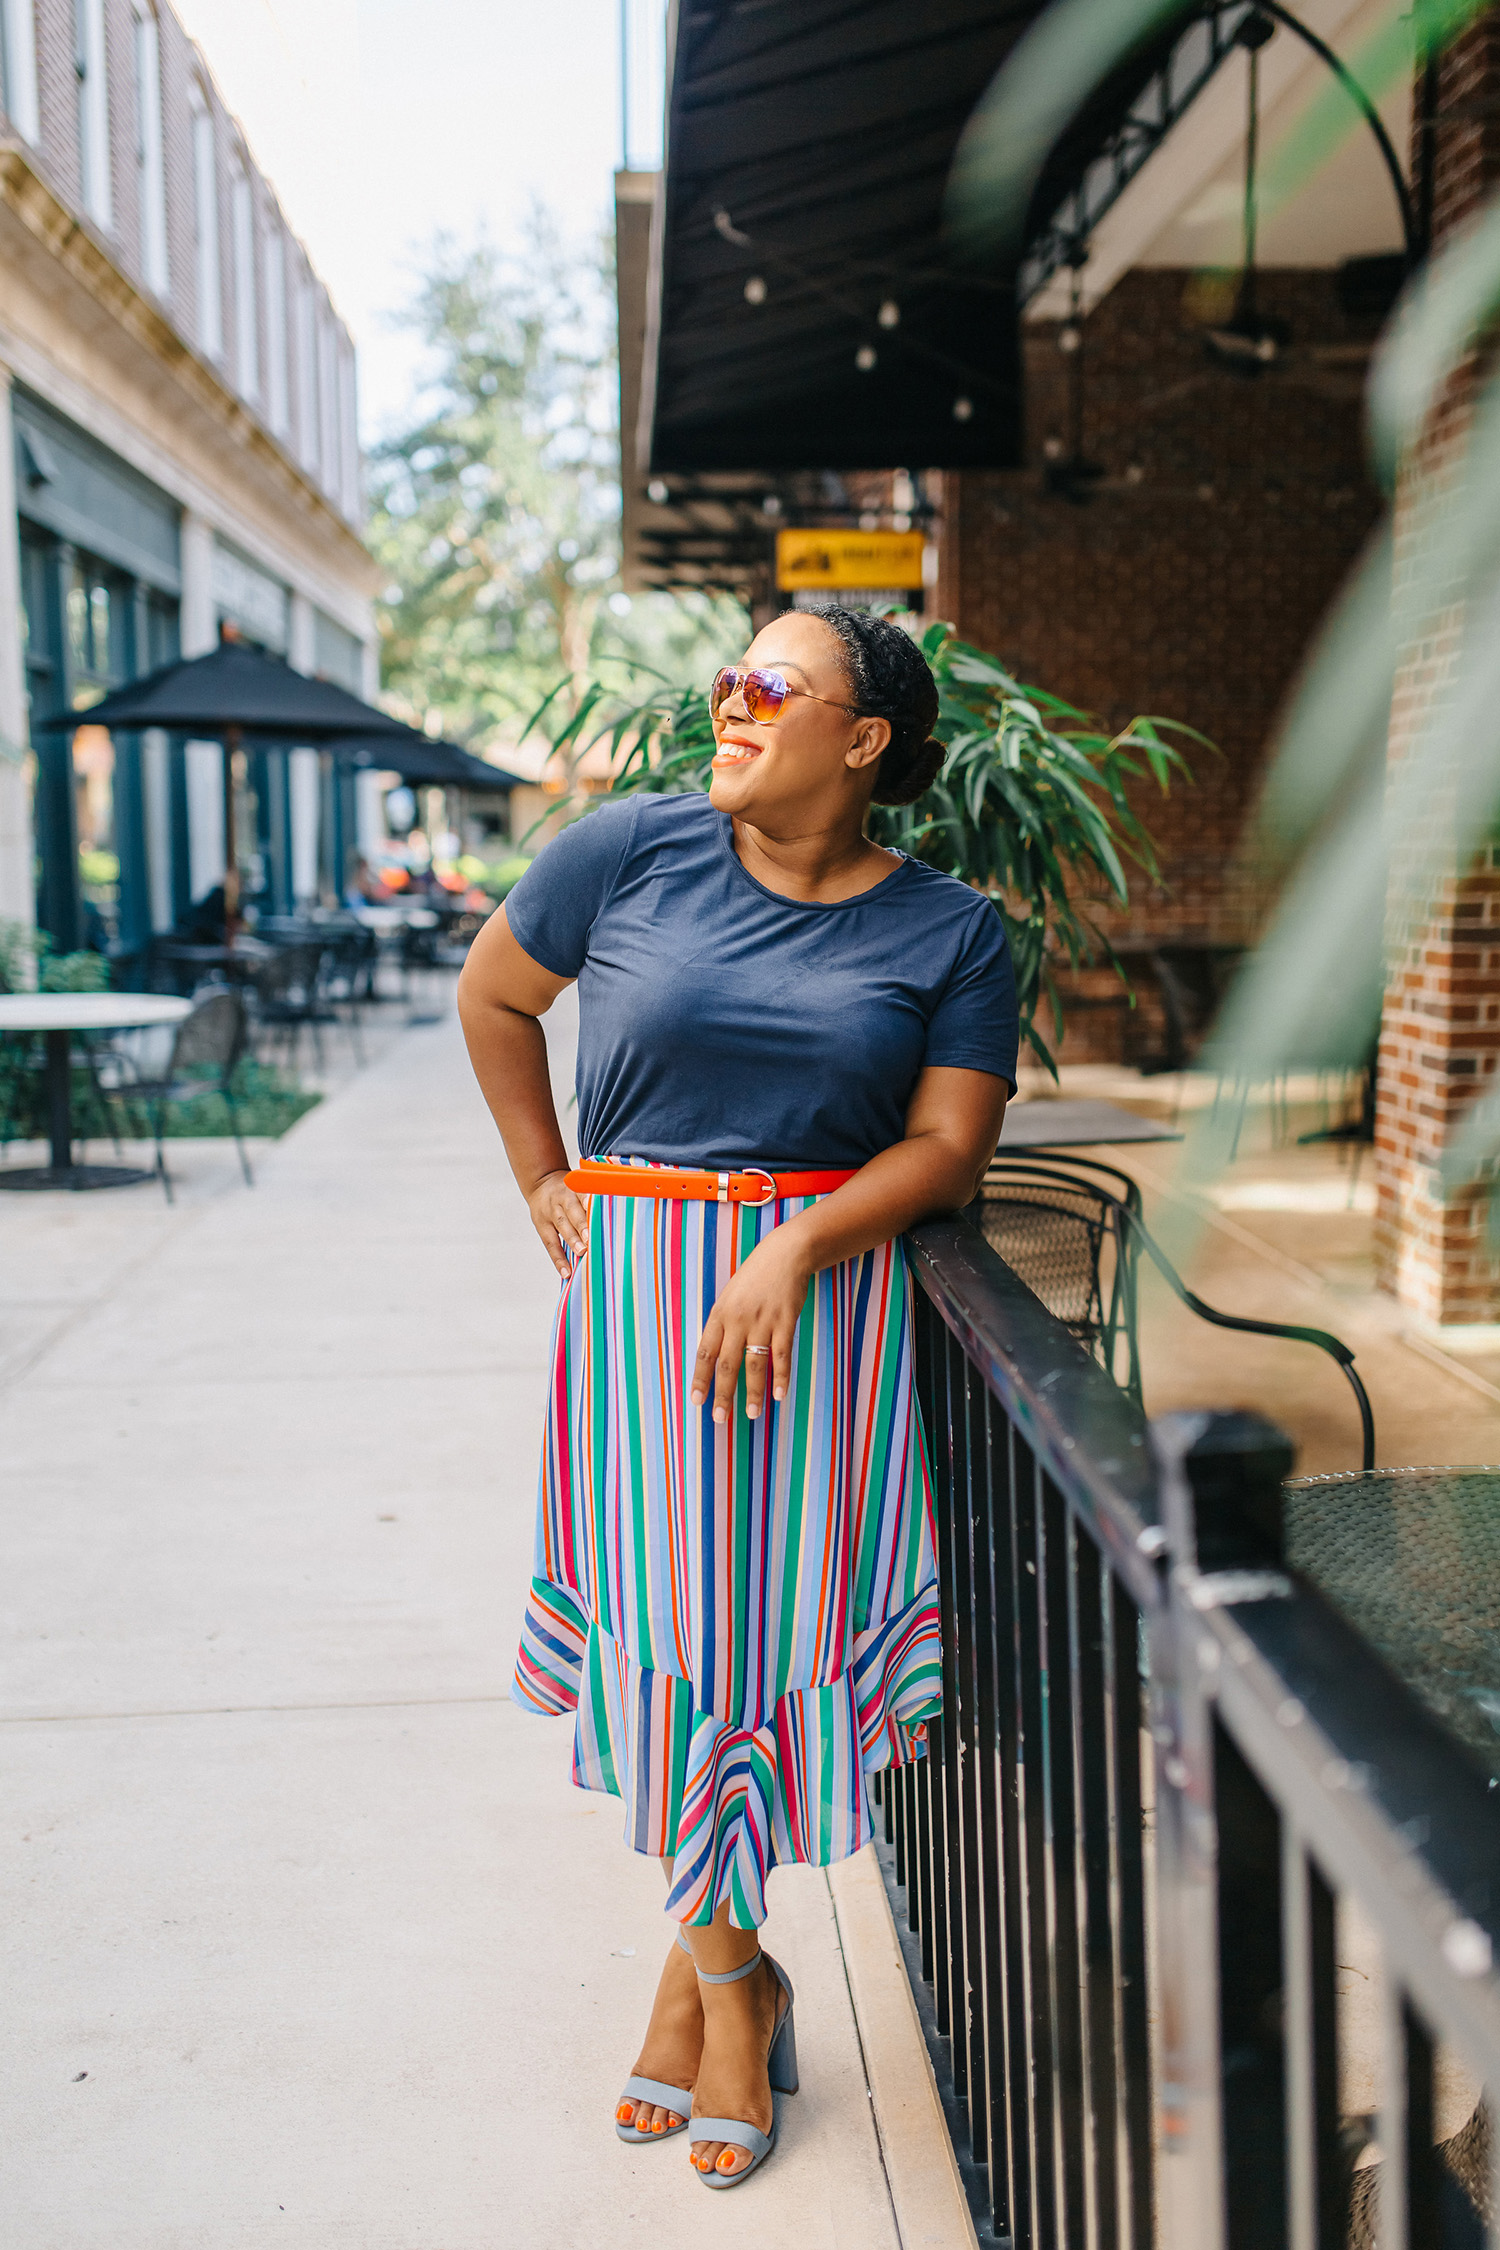 orlando fashion blogger styles a colorful skirt